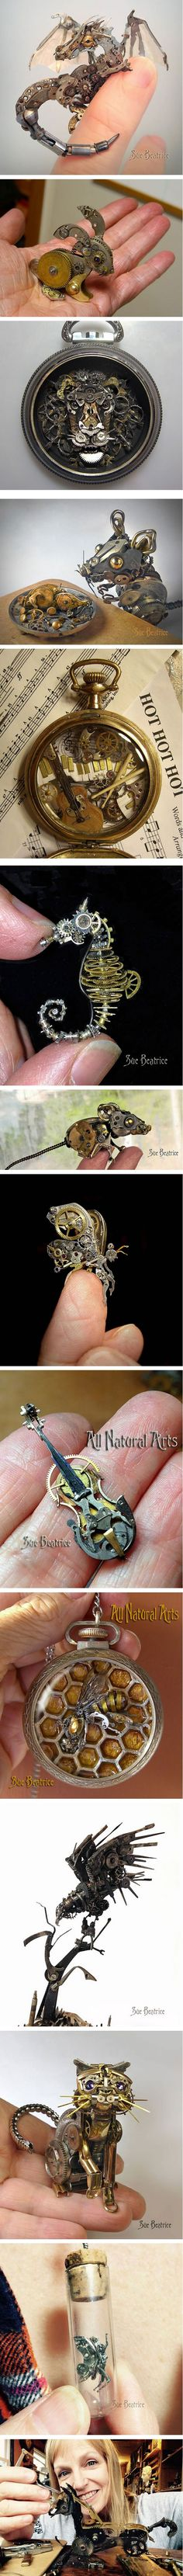 This Artist Recycles Old Watch Parts Into Steampunk Sculptures (By Susan Beatrice) - really impressive